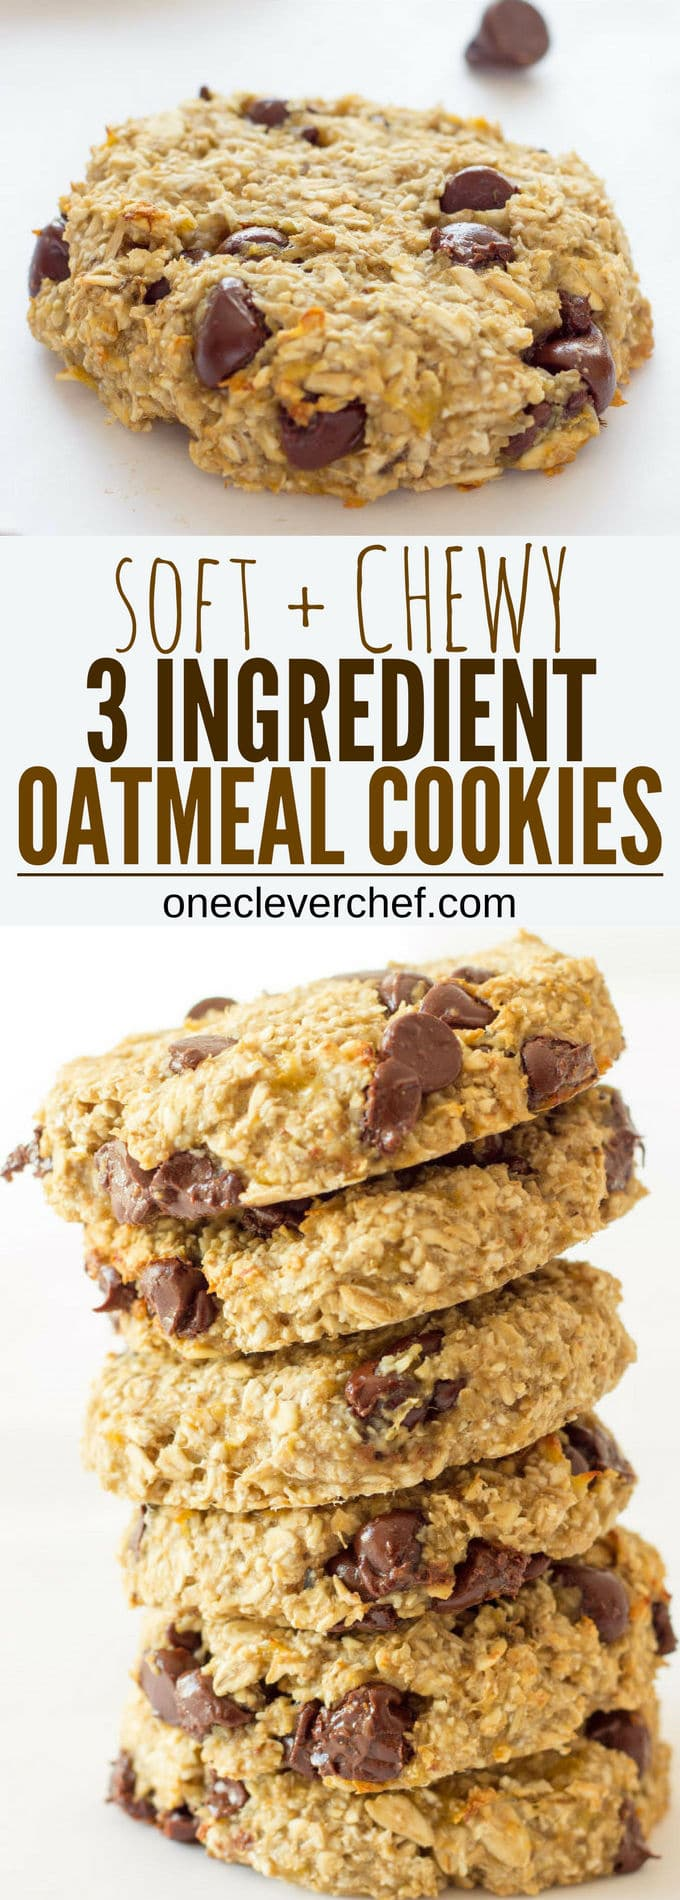 3 Ingredient Banana Oatmeal Cookies One Clever Chef